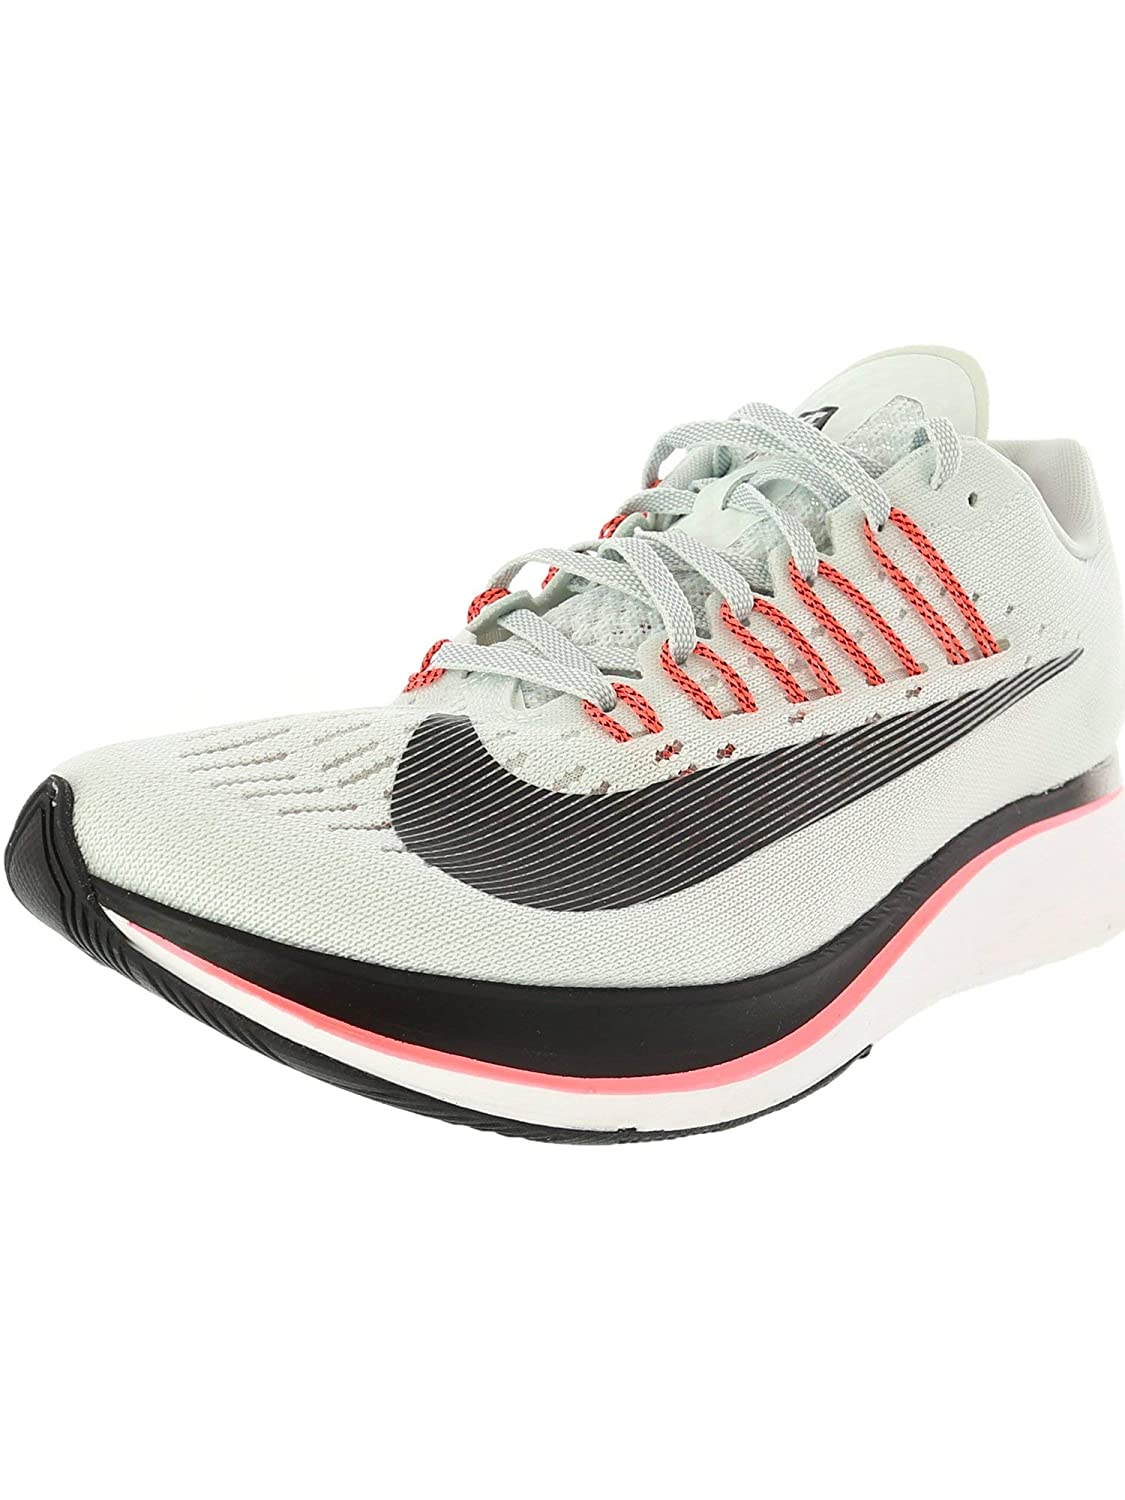 Grey   Grey   Pink Nike Women's WMNS Zoom Fly Trainers